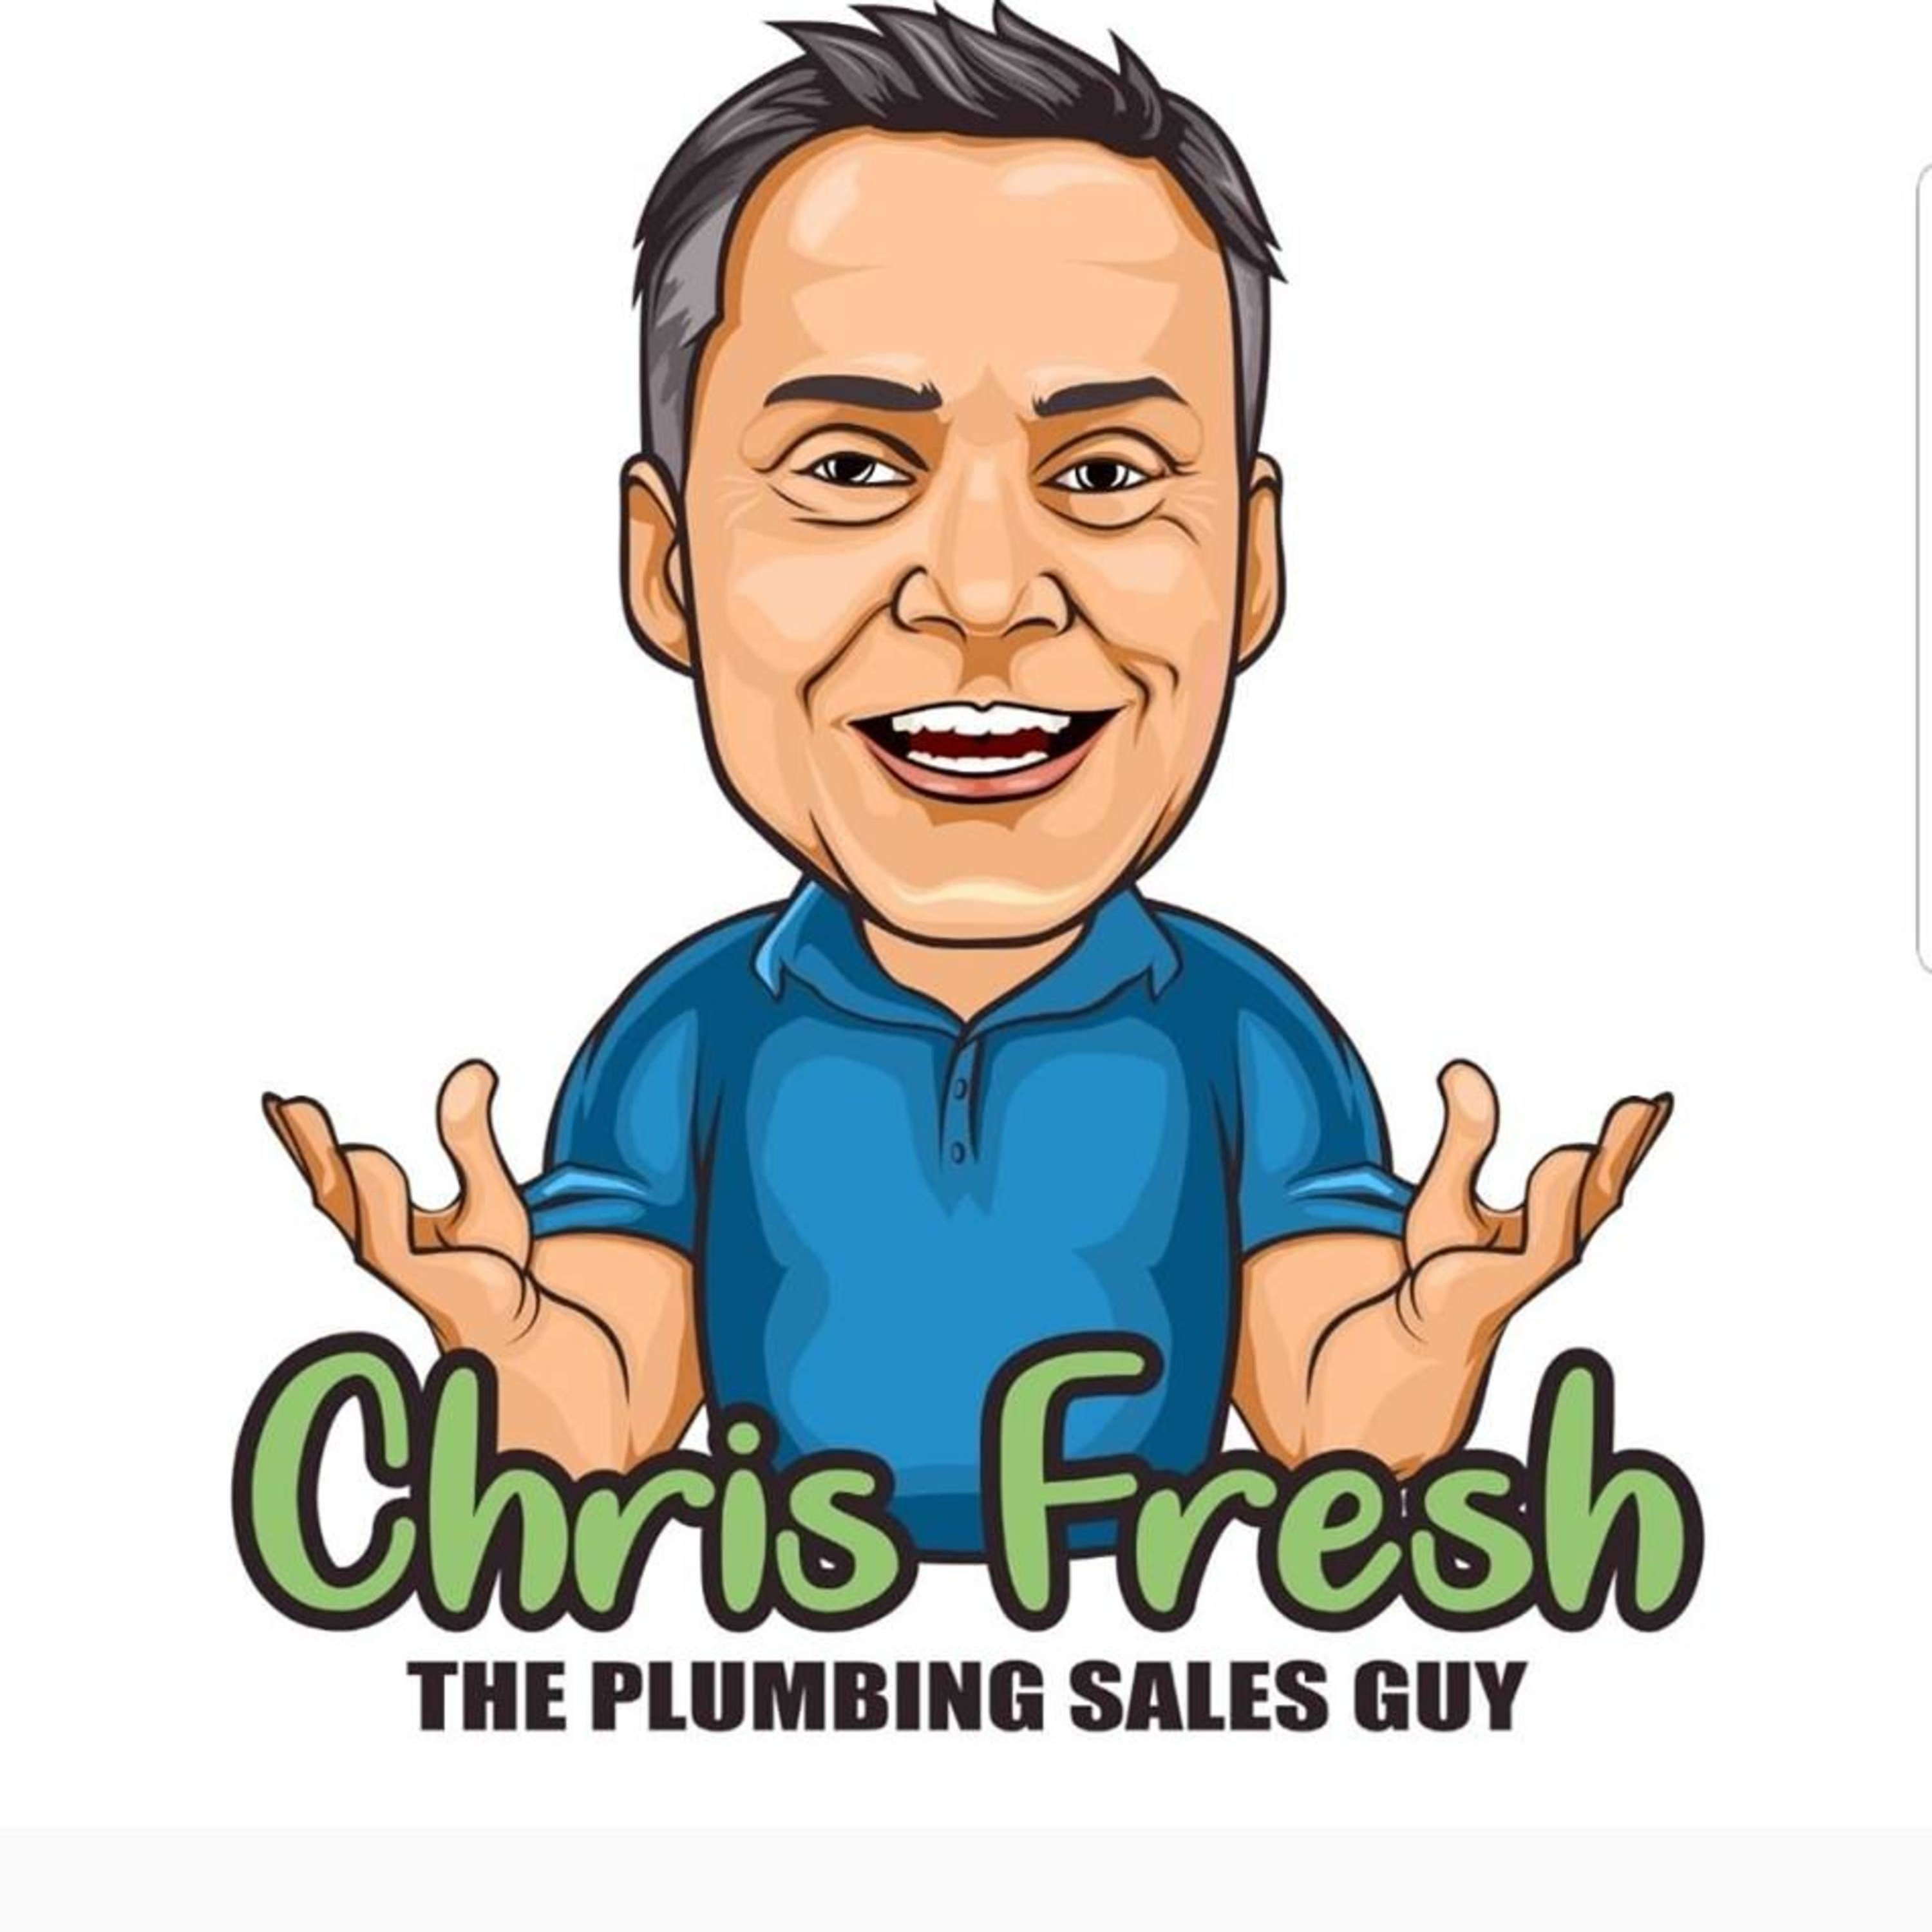 Episode 127: Another Reason A Plumber Has Value!